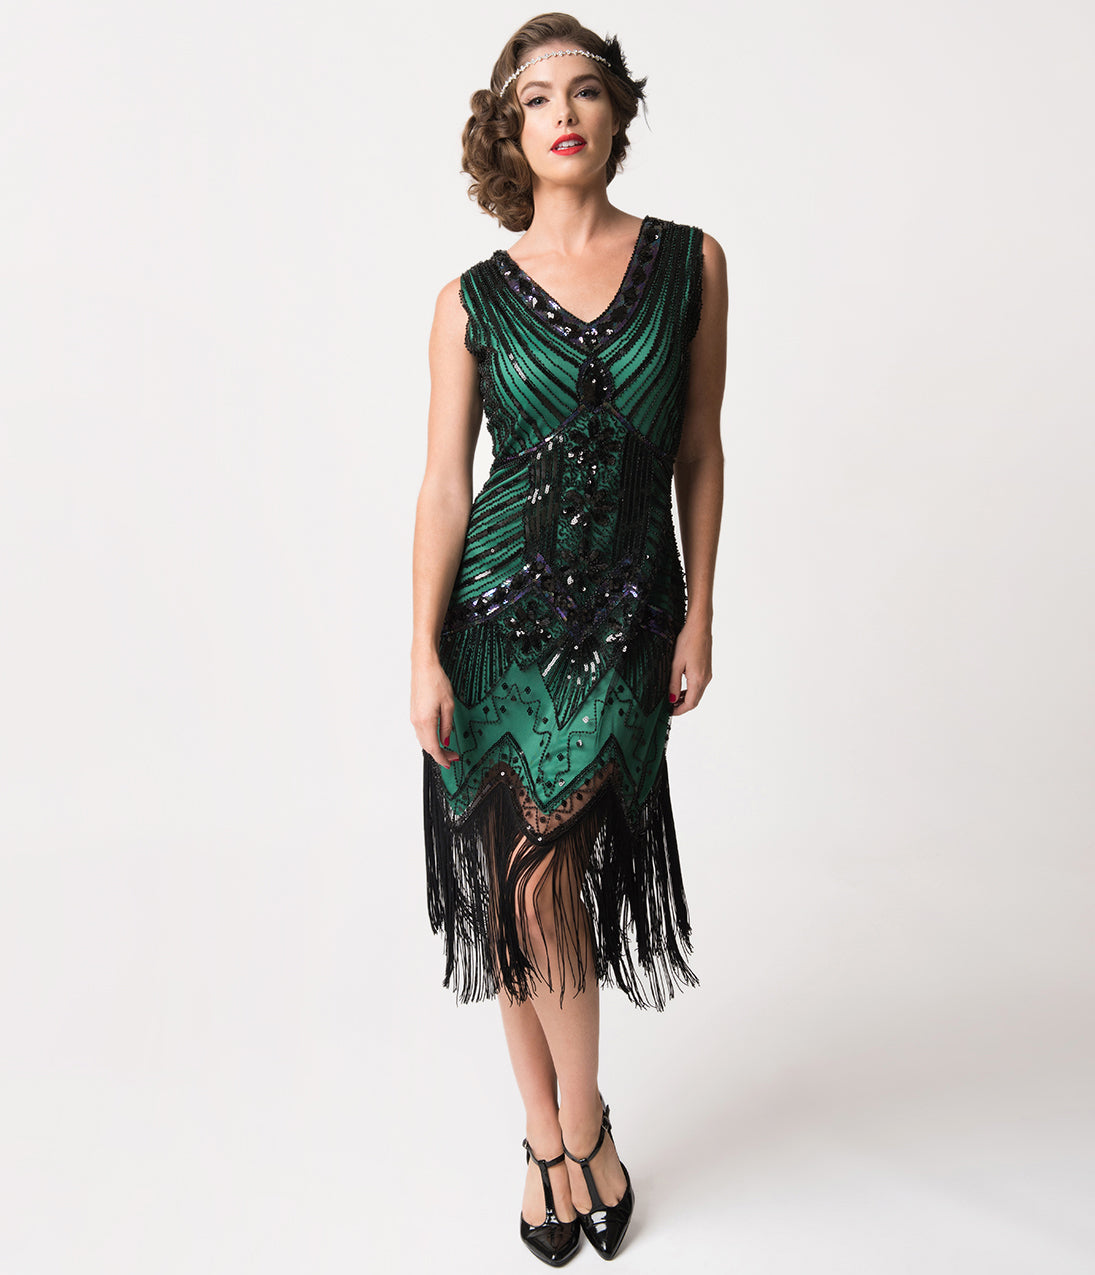 Vintage Evening Dresses and Formal Evening Gowns Unique Vintage 1920S Deco Green  Black Sequin Veronique Fringe Flapper Dress $98.00 AT vintagedancer.com